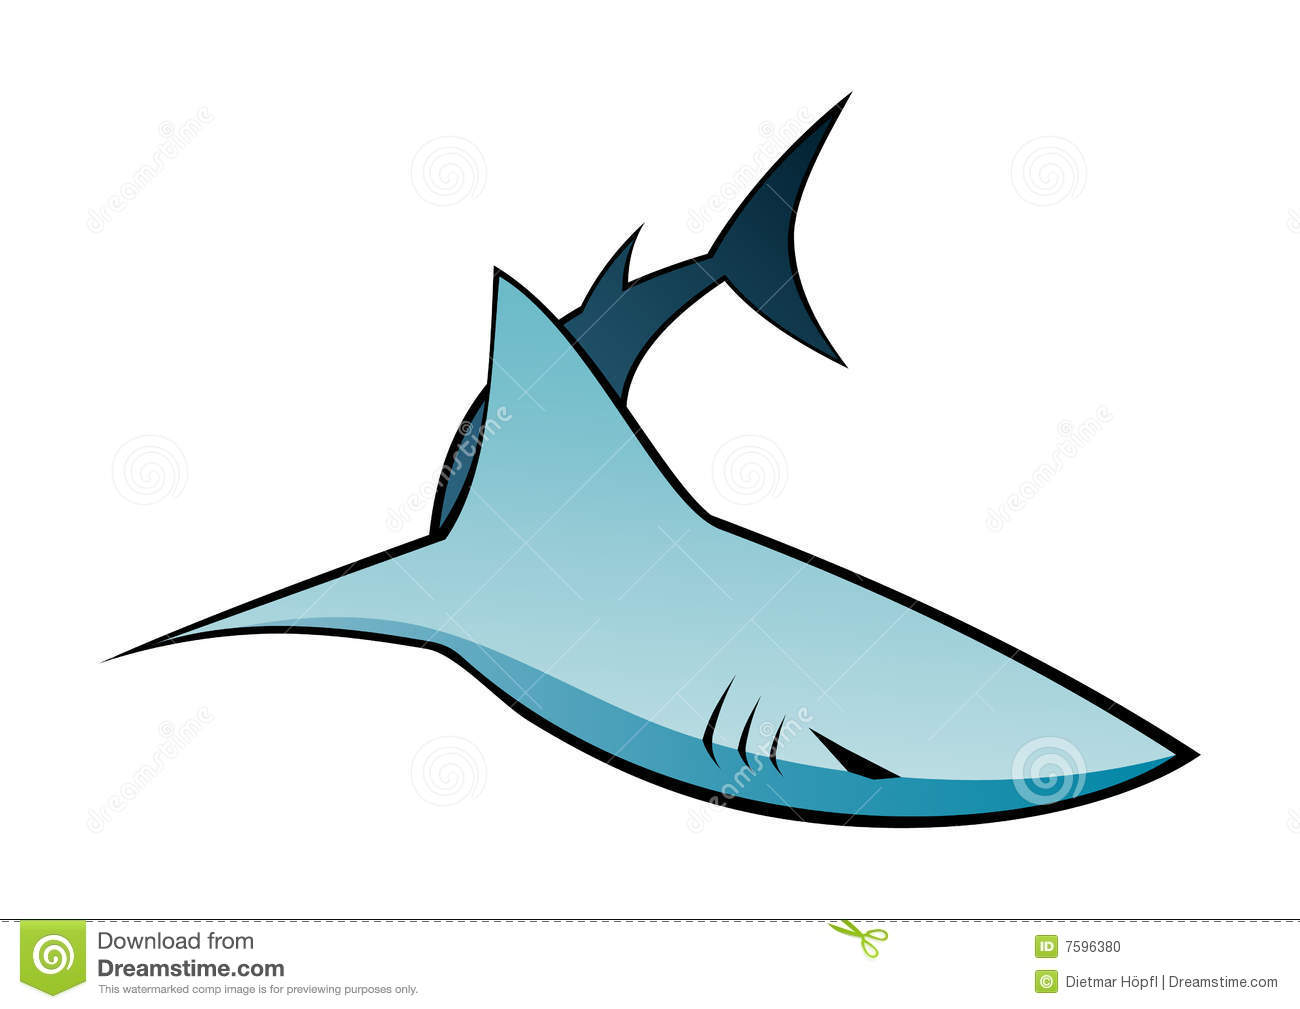 Dessin de requin photo stock image 7596380 - Dessin de requin blanc ...